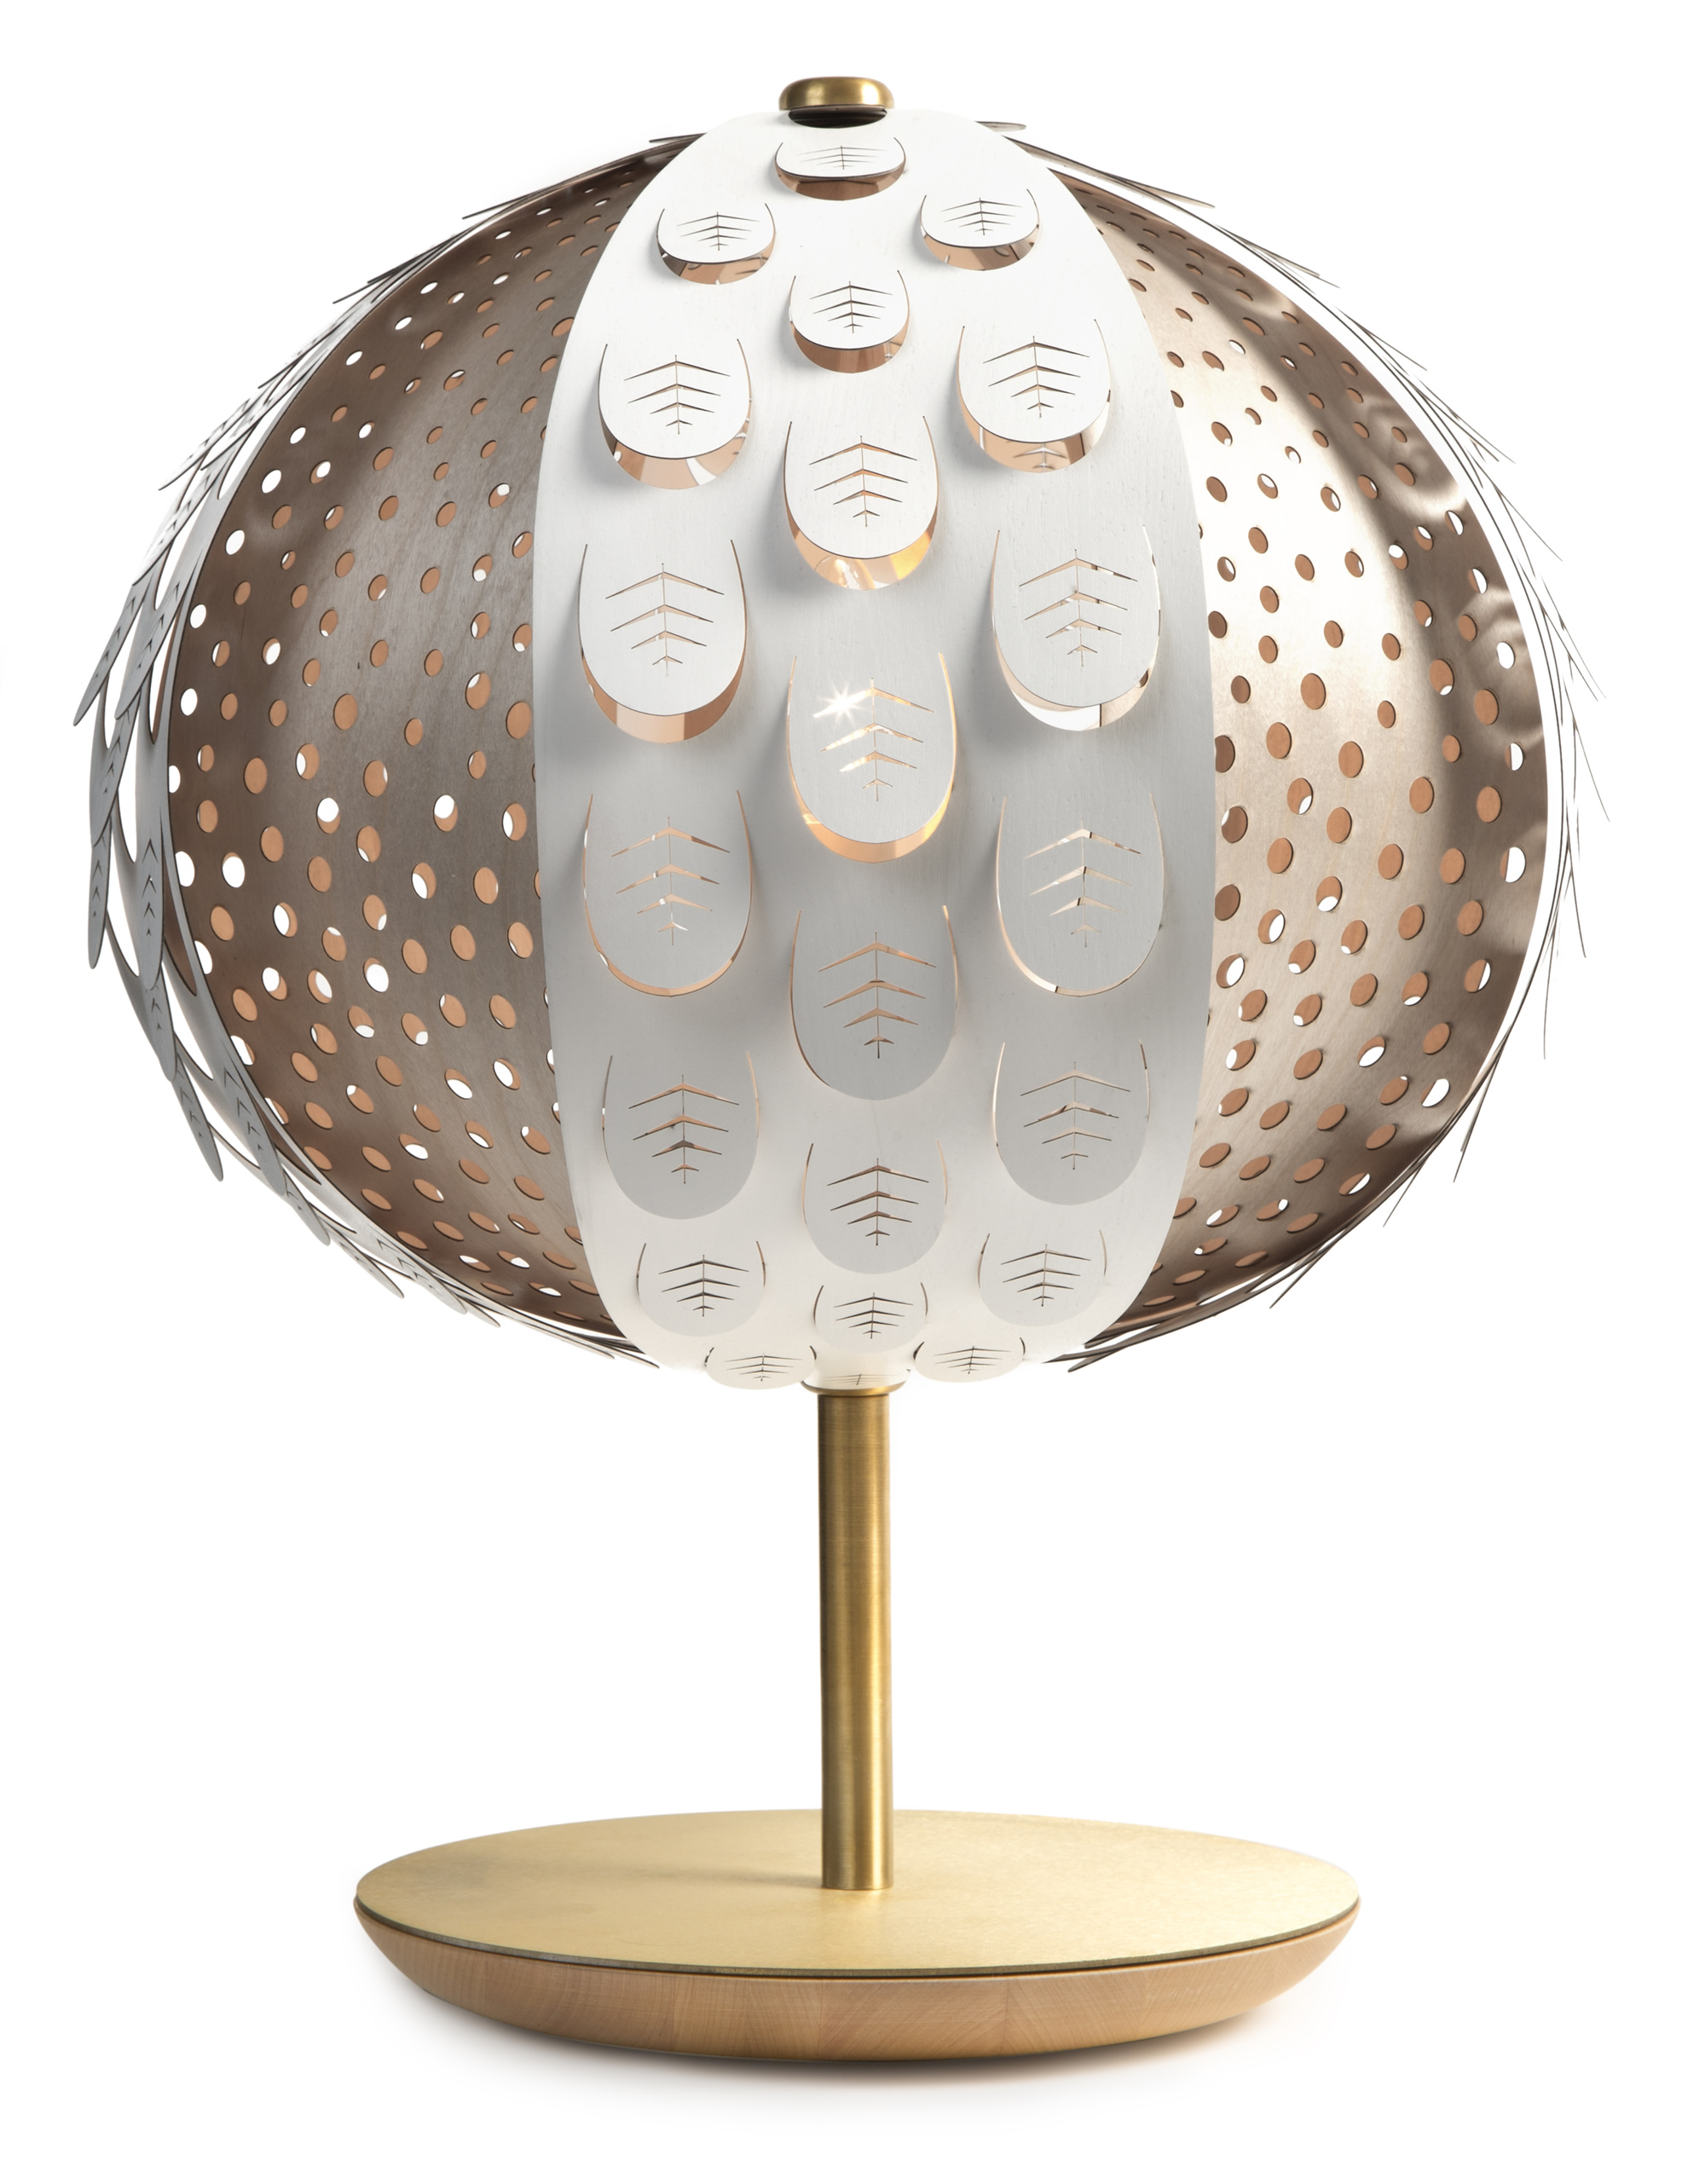 Knopp Table Lamp by Ania Pauser for Klong